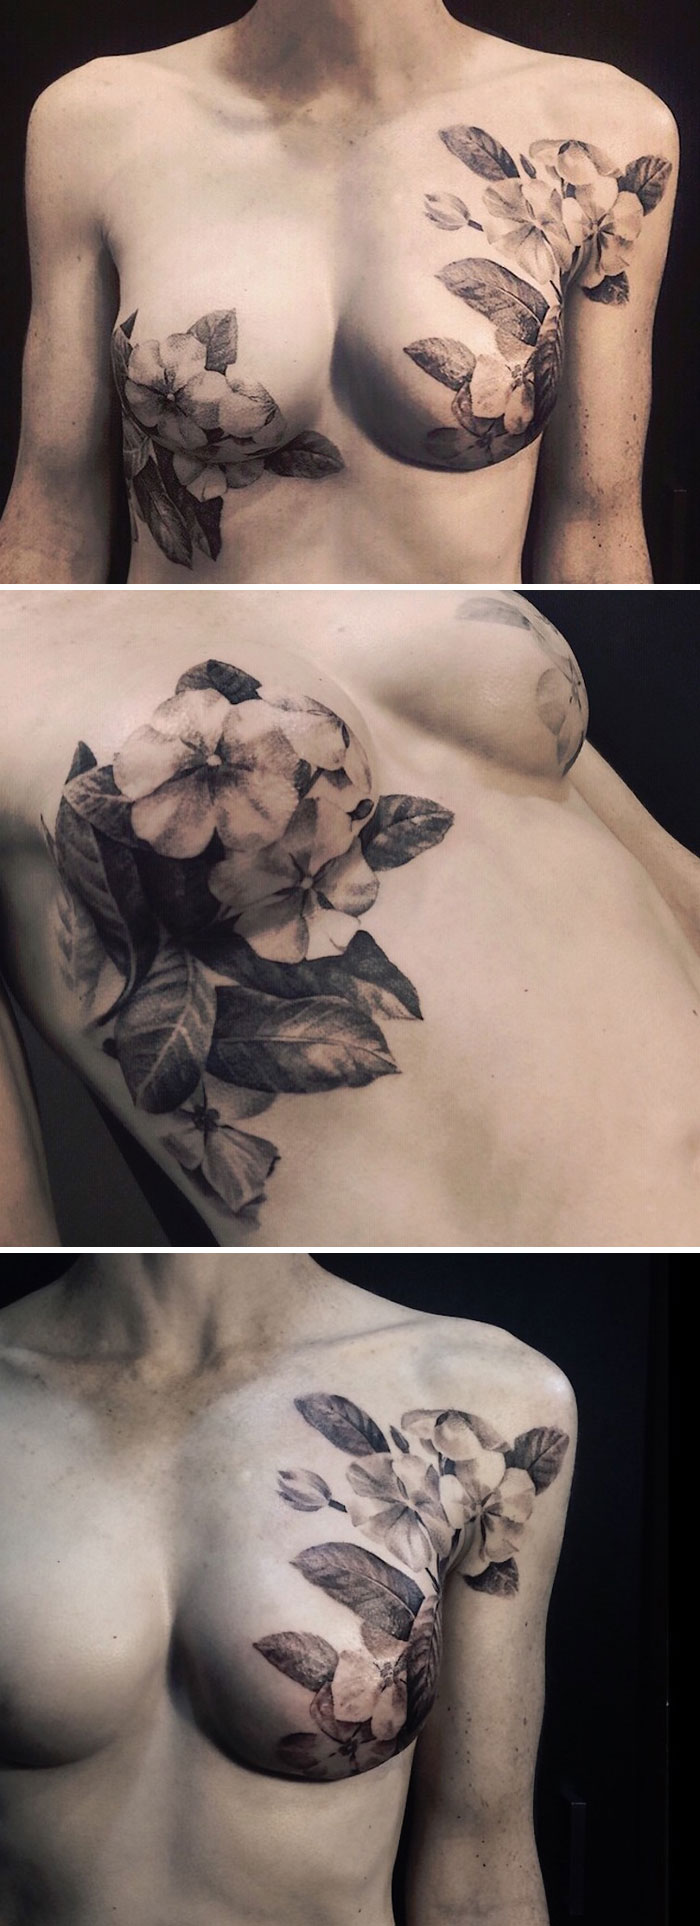 10 Floral Tattoo Artists Who Will Make You Want To Get Ideas And Designs